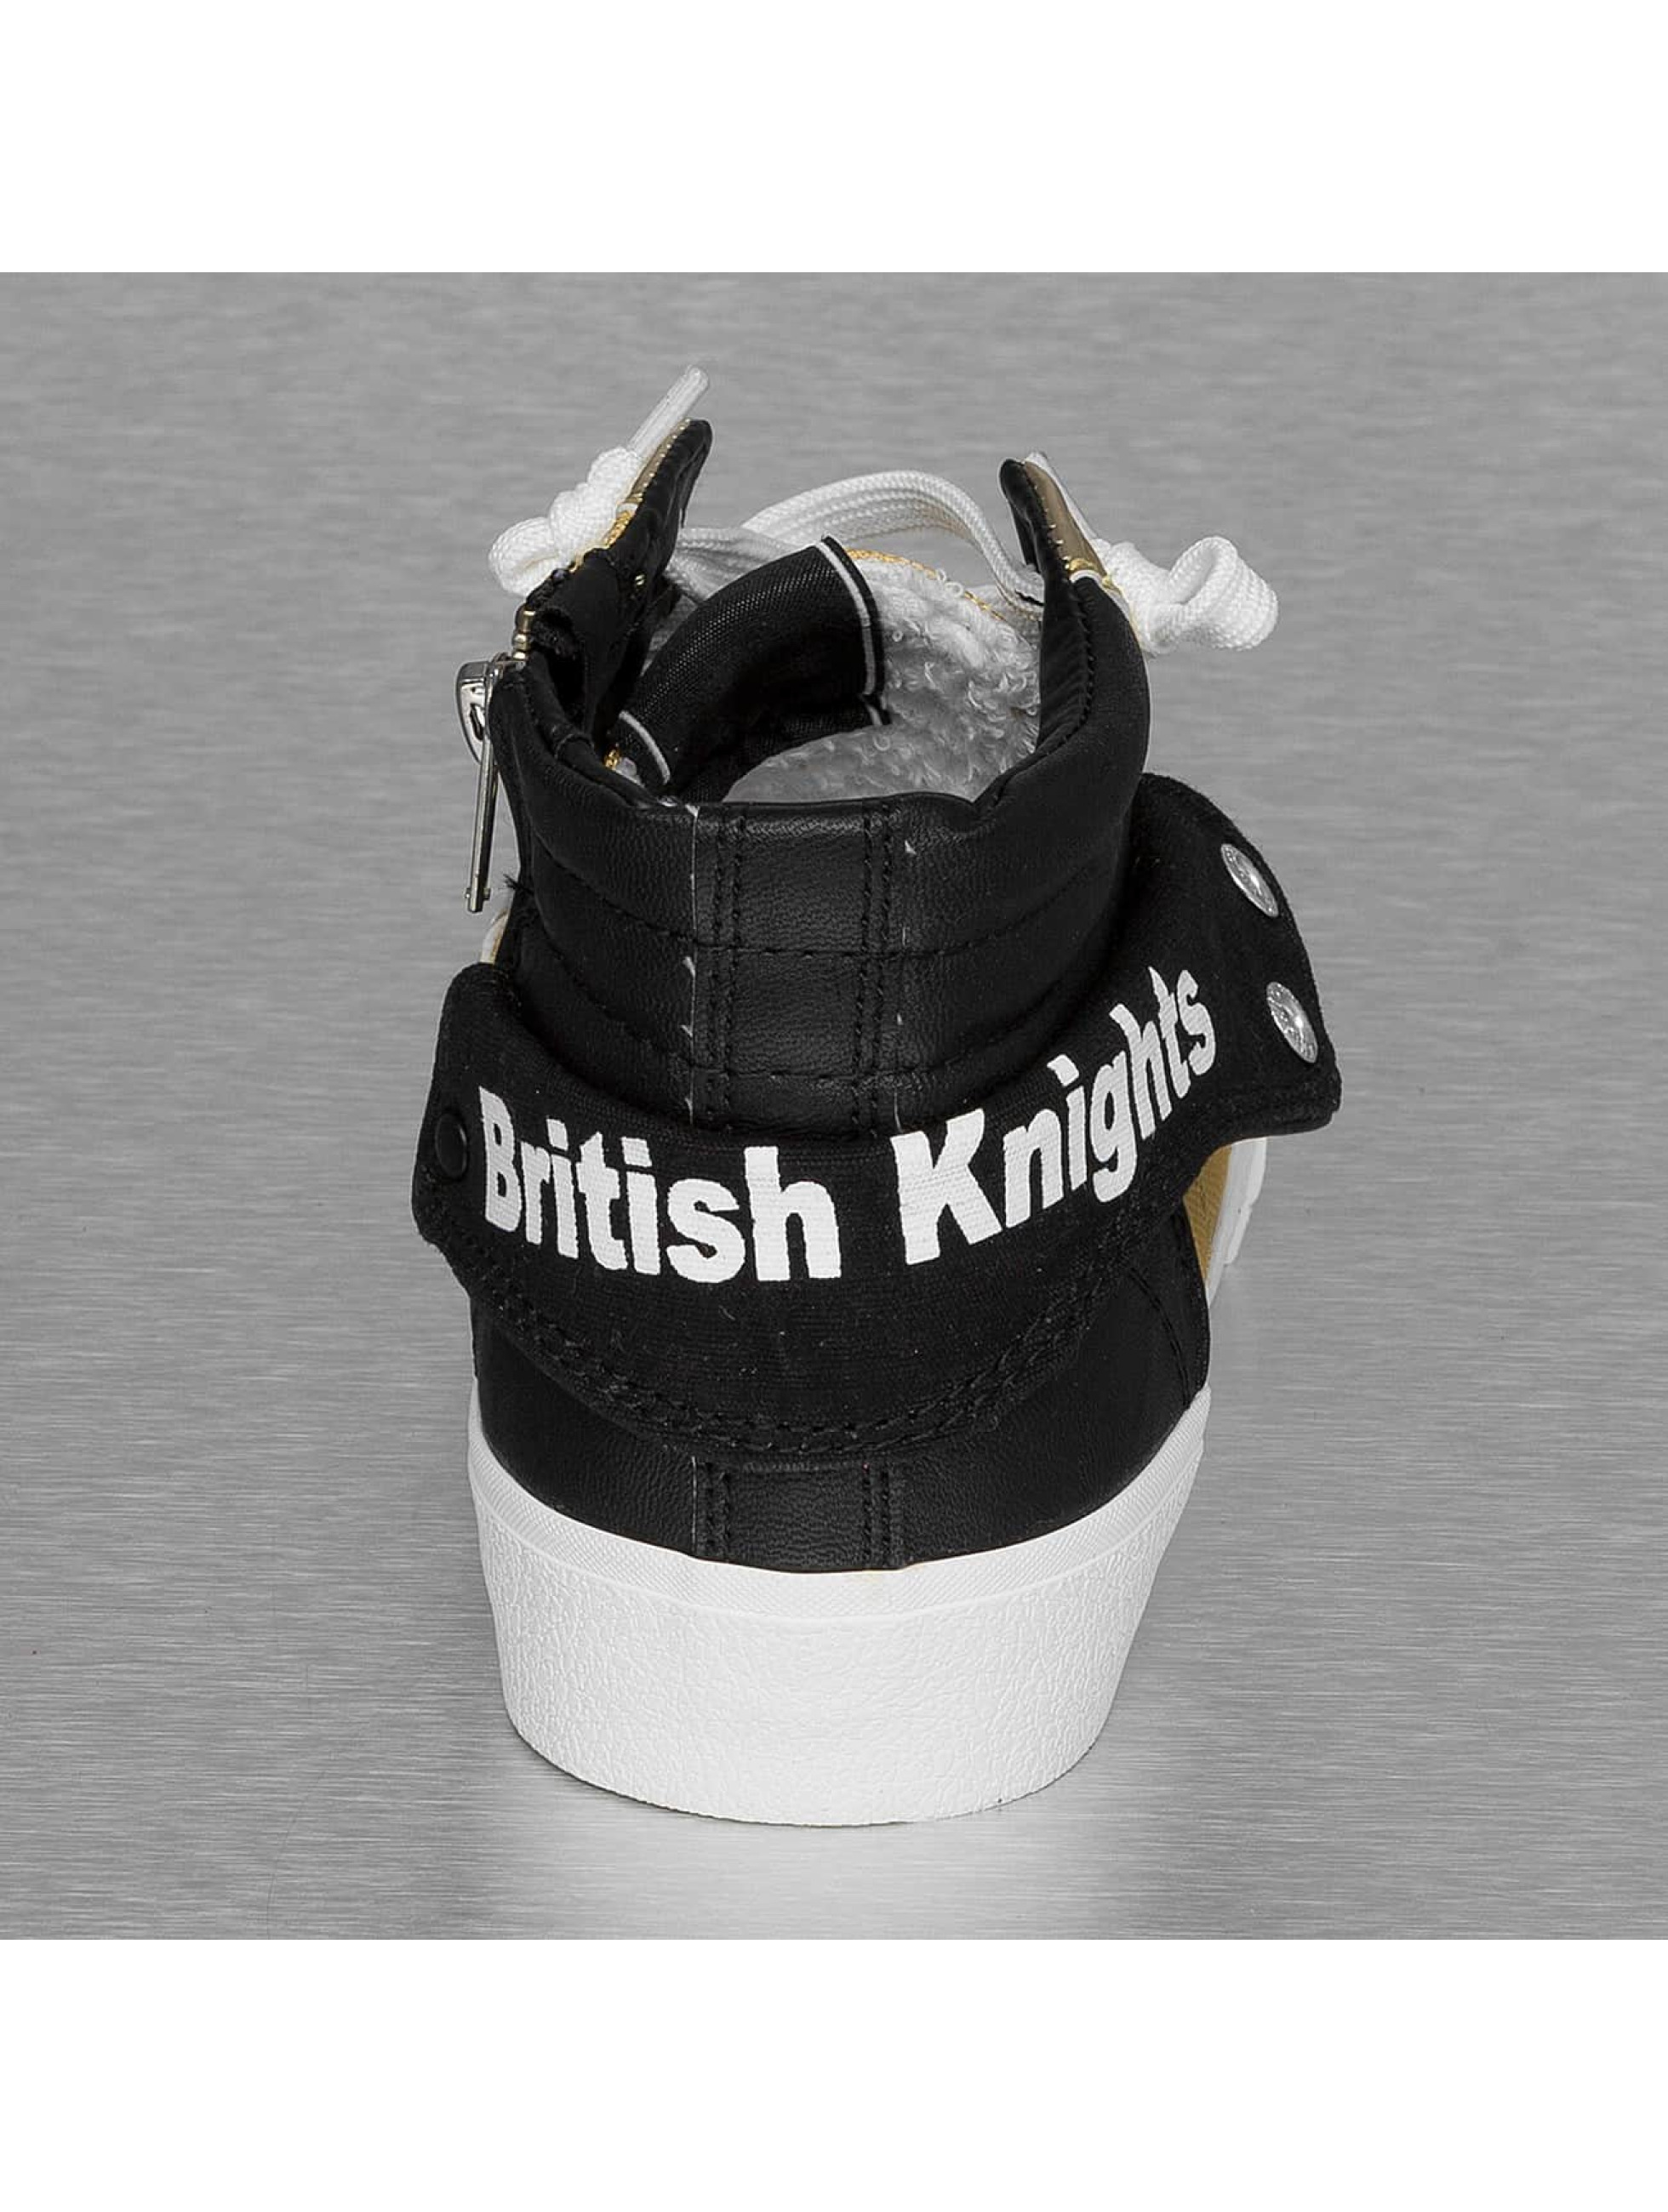 British Knights Baskets Rigit Mesh PU or